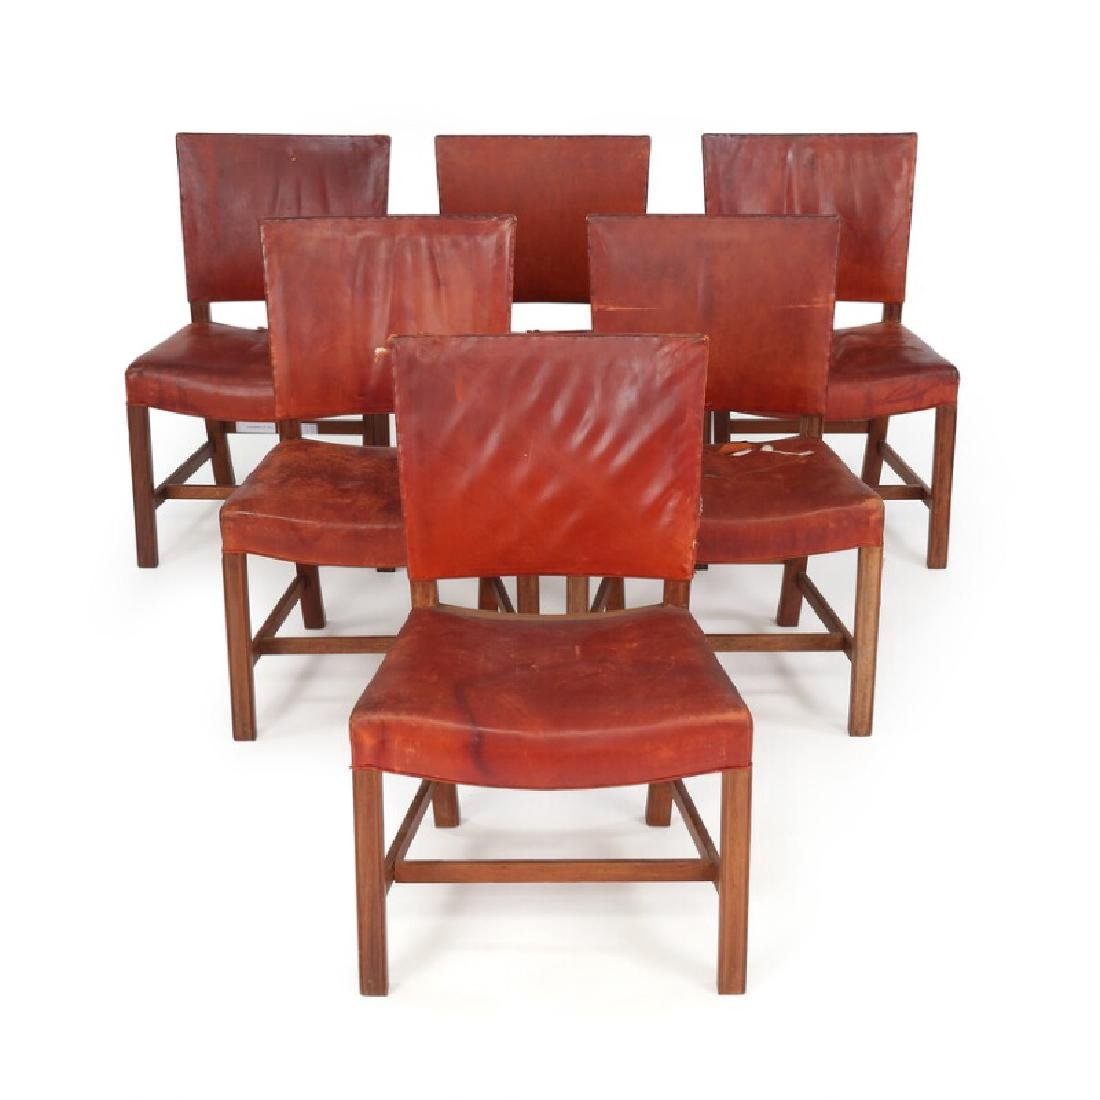 "Kaare Klint: ""The Red Chair"". A set of six chairs with"